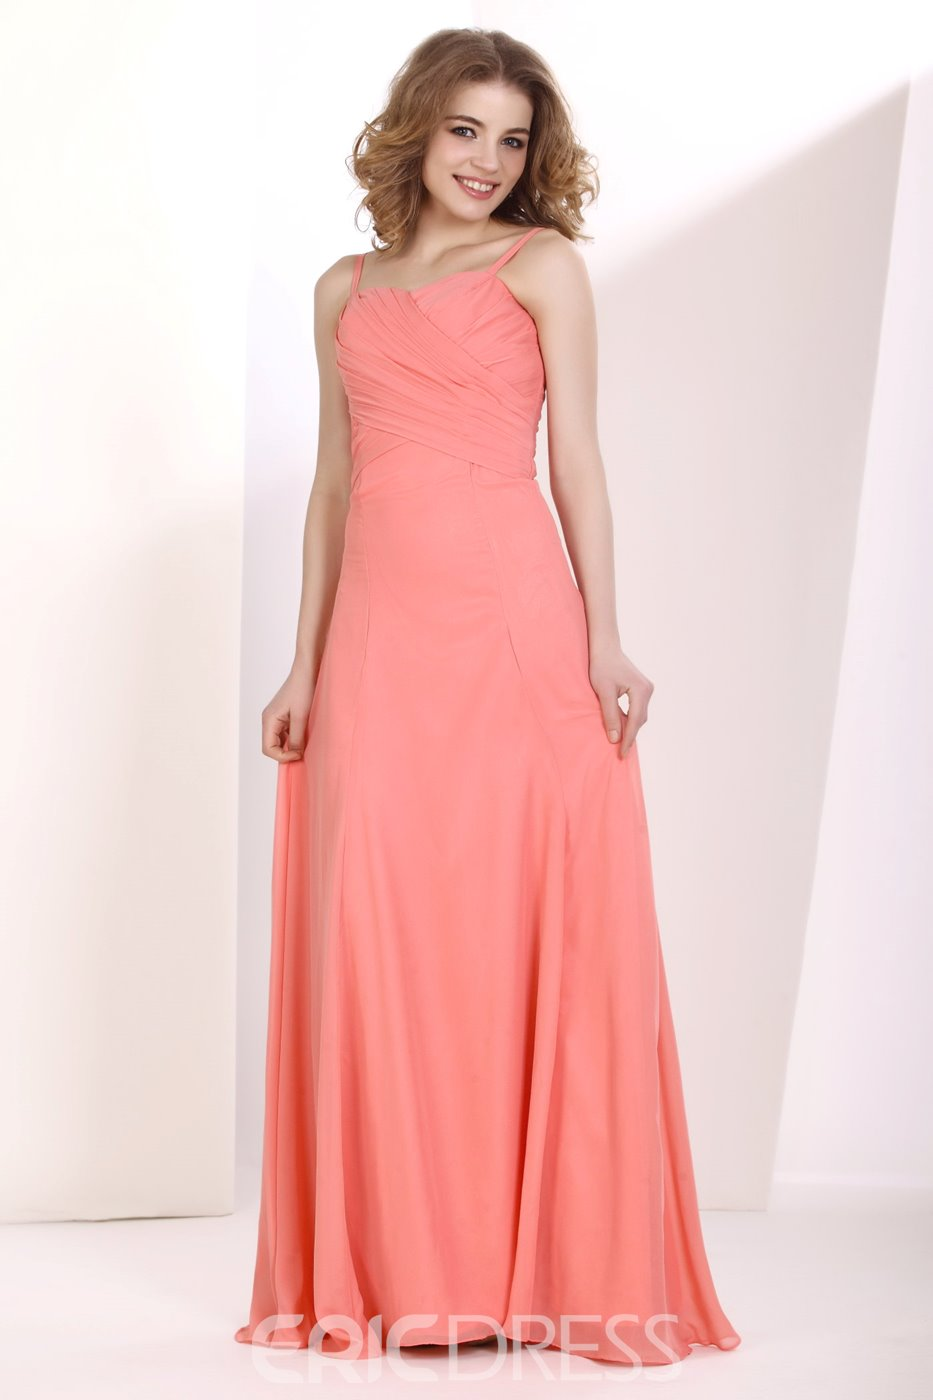 Hot Spaghetti Straps Floor-length Bridesmaid Dress